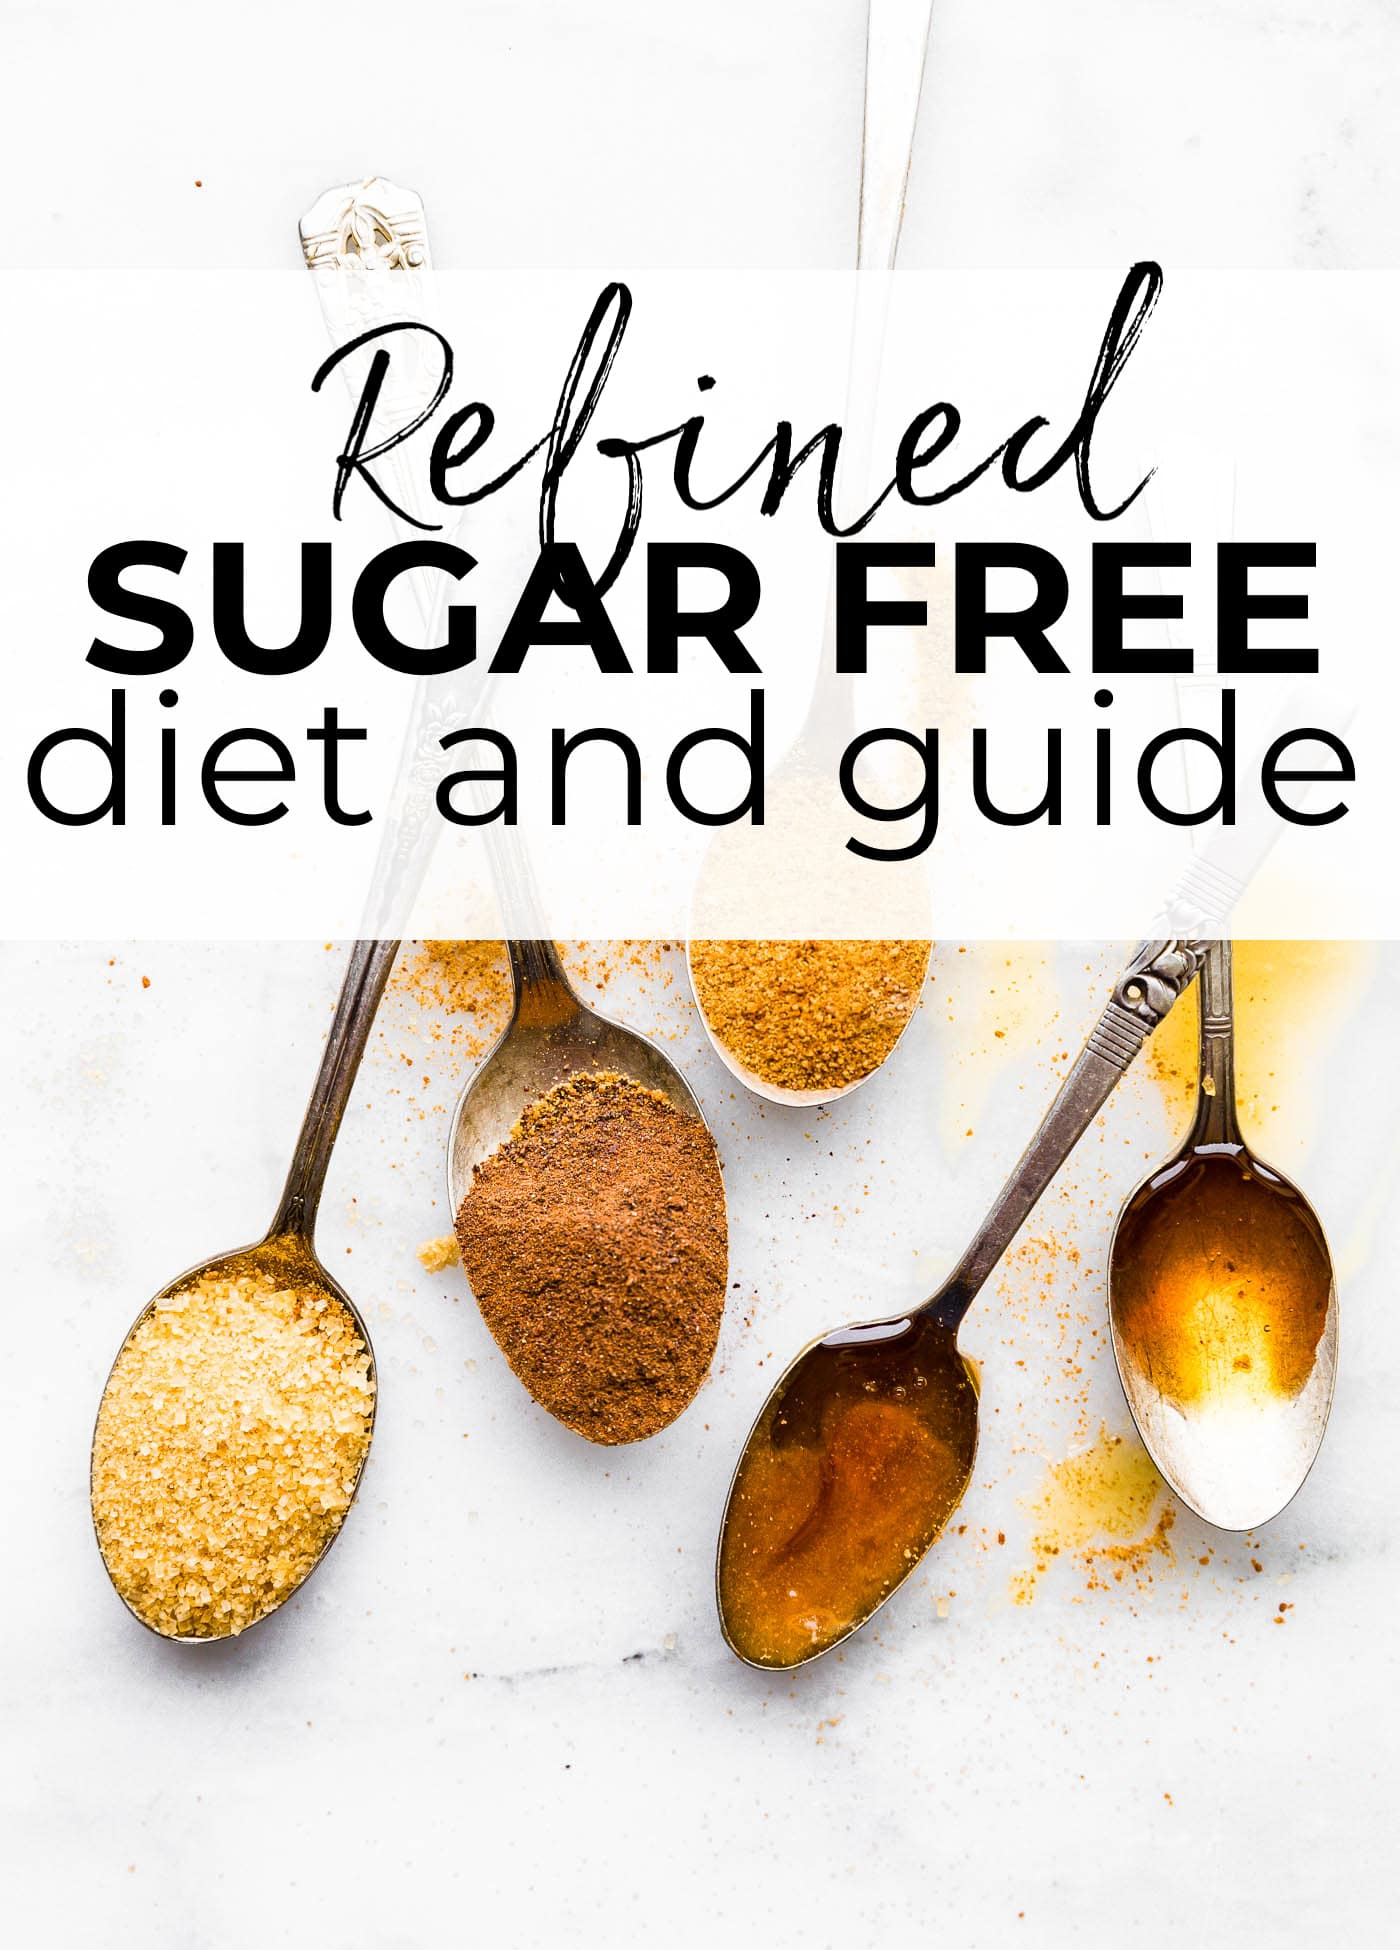 5 different forms of natural sweeteners for a refined sugar free diet